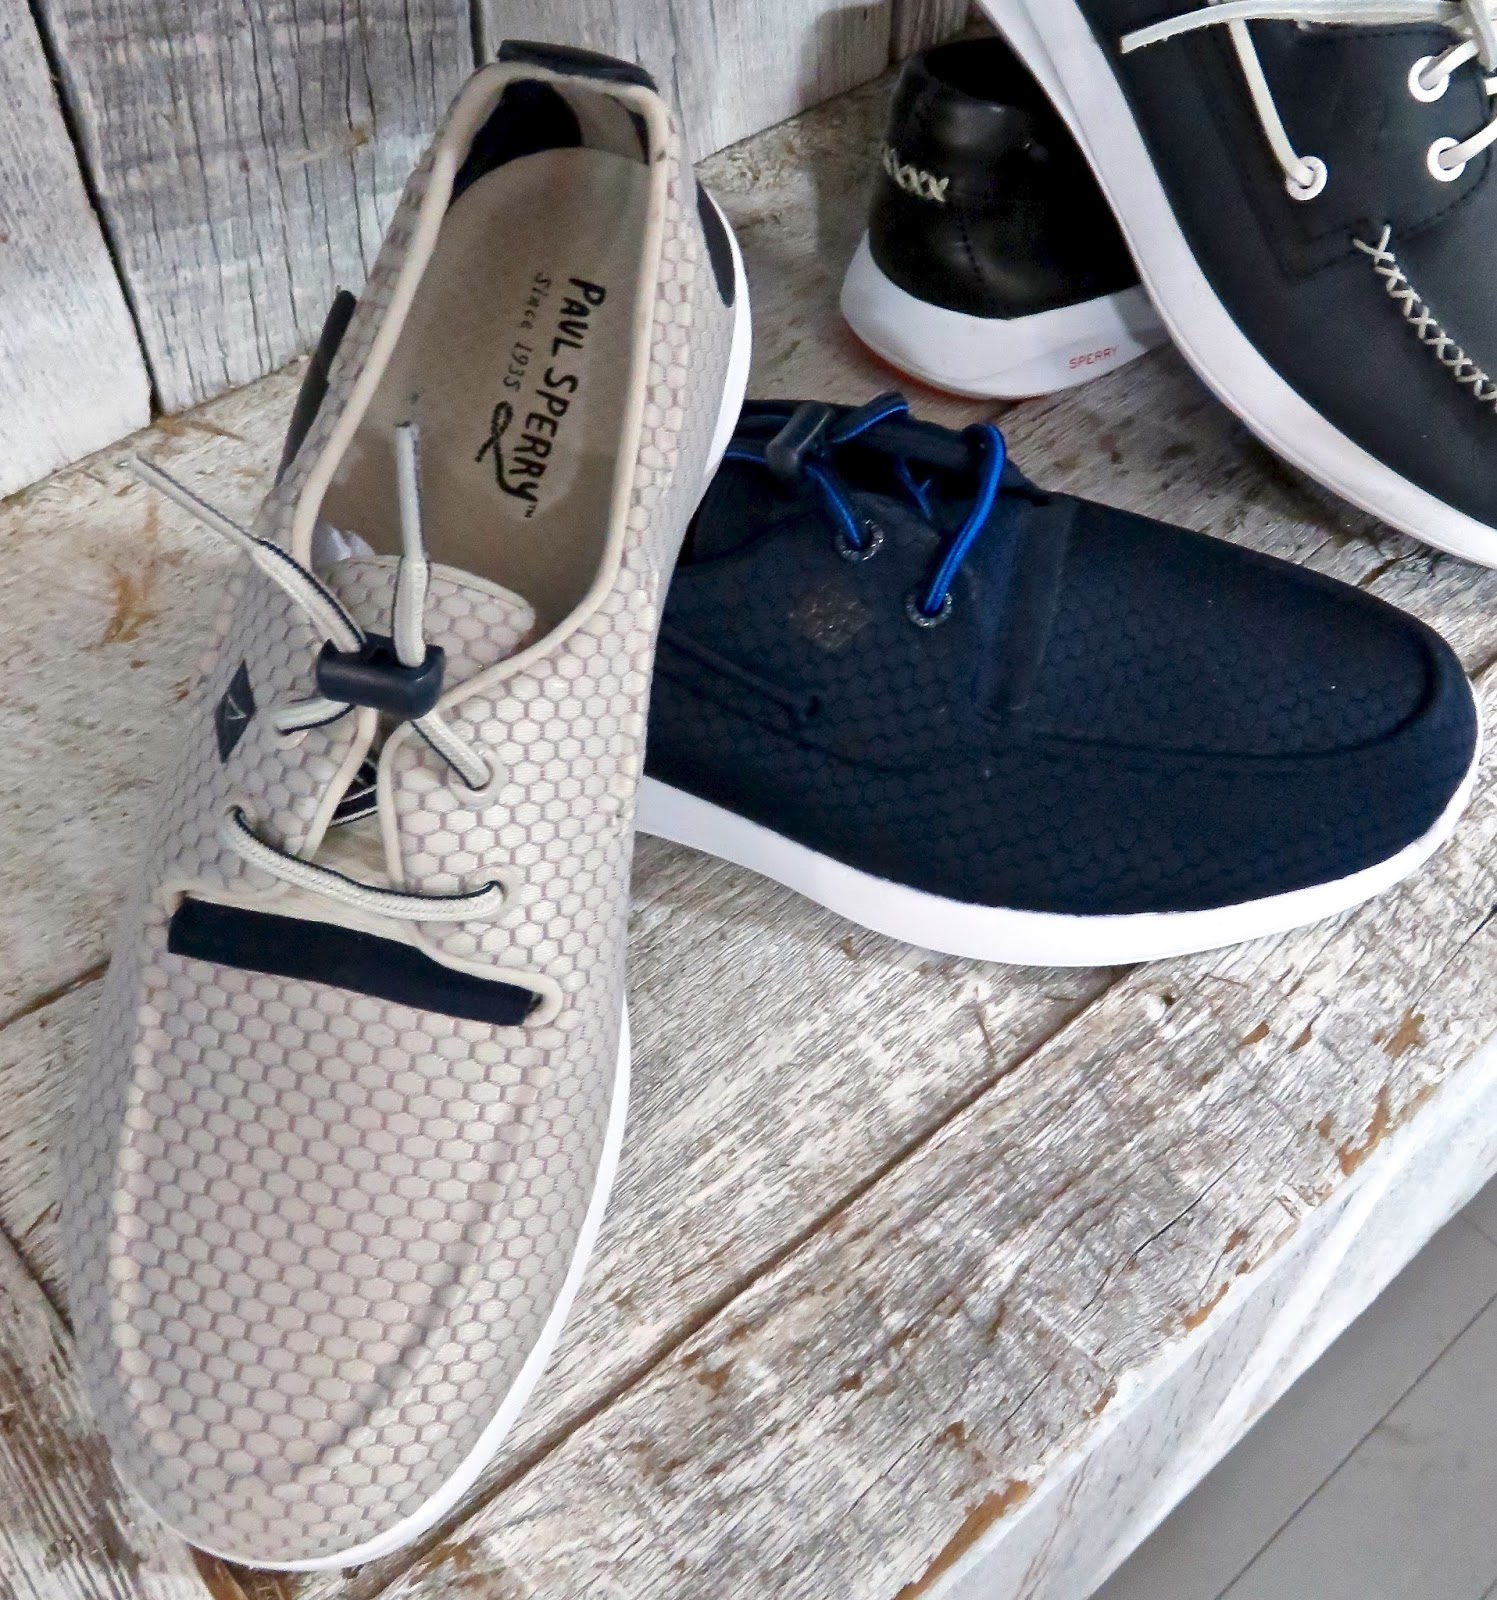 6d85ae73d330e Sojourn 2-Eye Molded Mesh  100-sneaker boat shoe hybrid w  molded one piece  mesh upper-with ez on off toggle closure